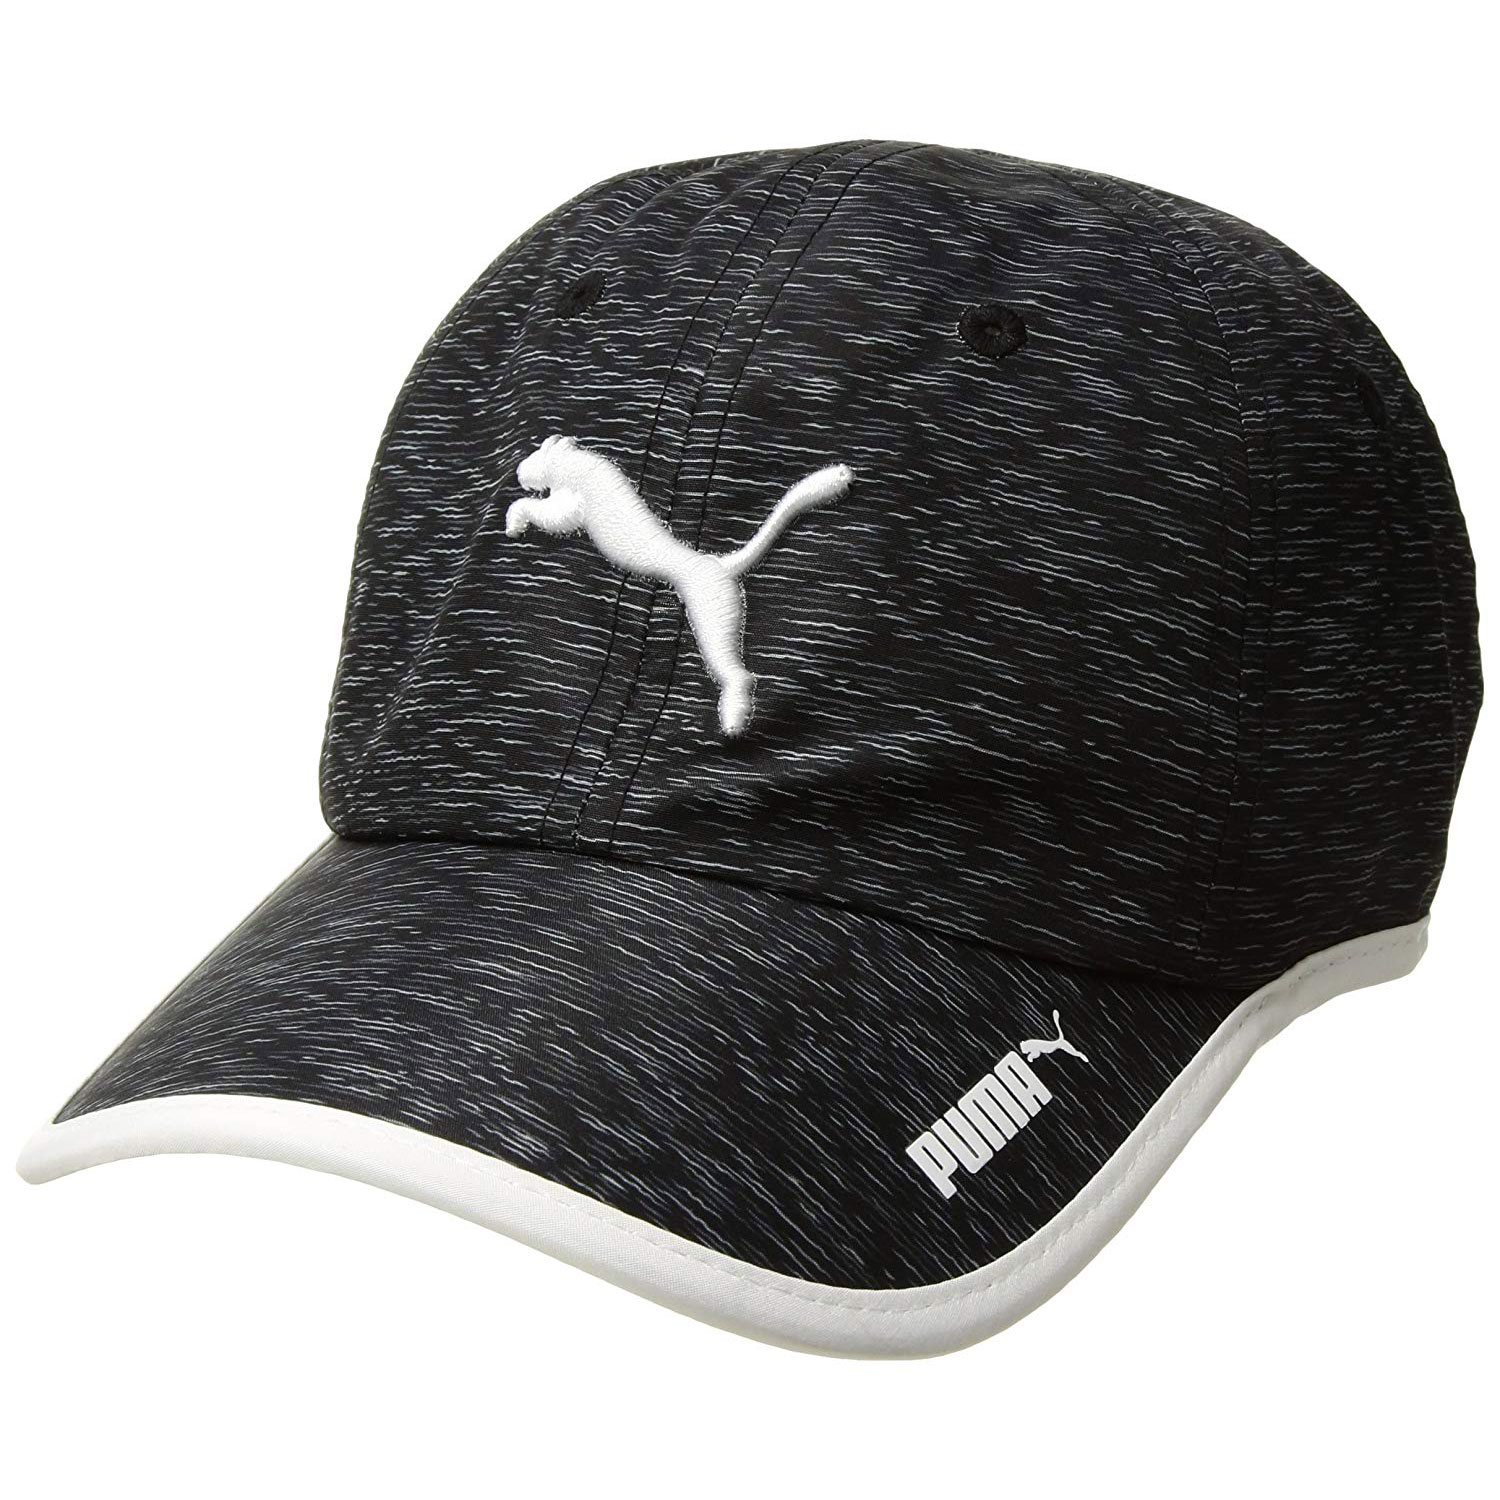 PUMA Women's Evercast Running Cap